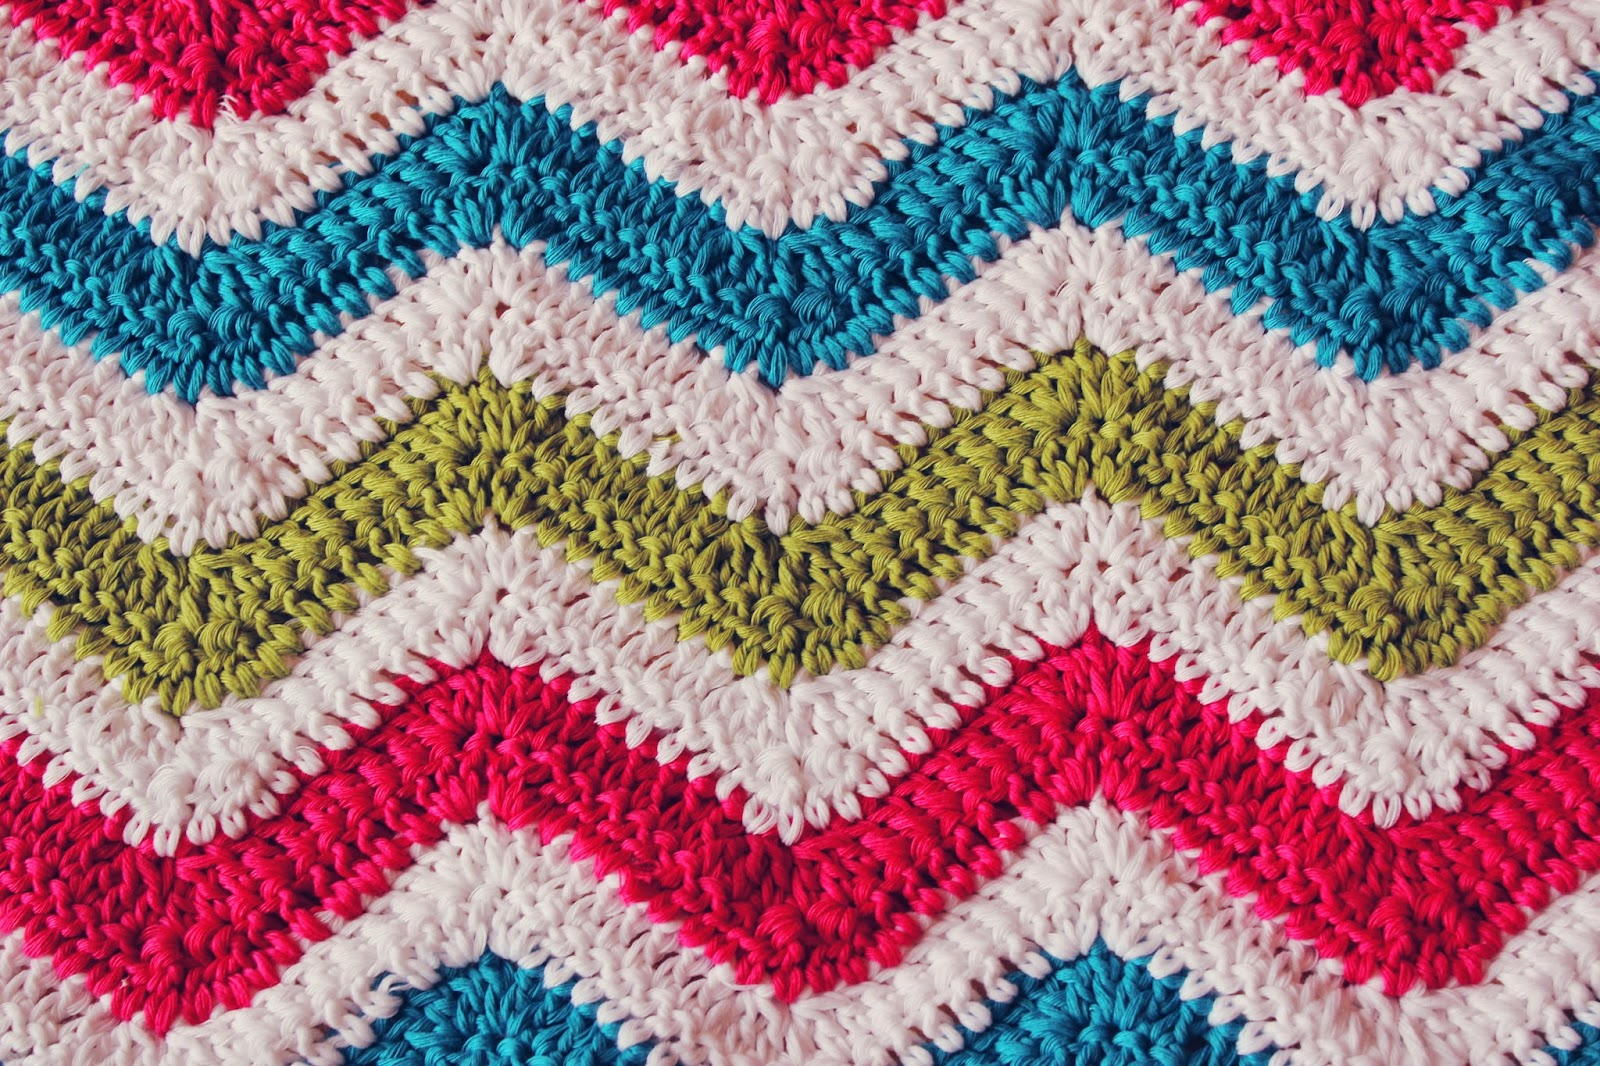 Misadventures of alice the perfect crochet ripple blanket pattern ripple3g ccuart